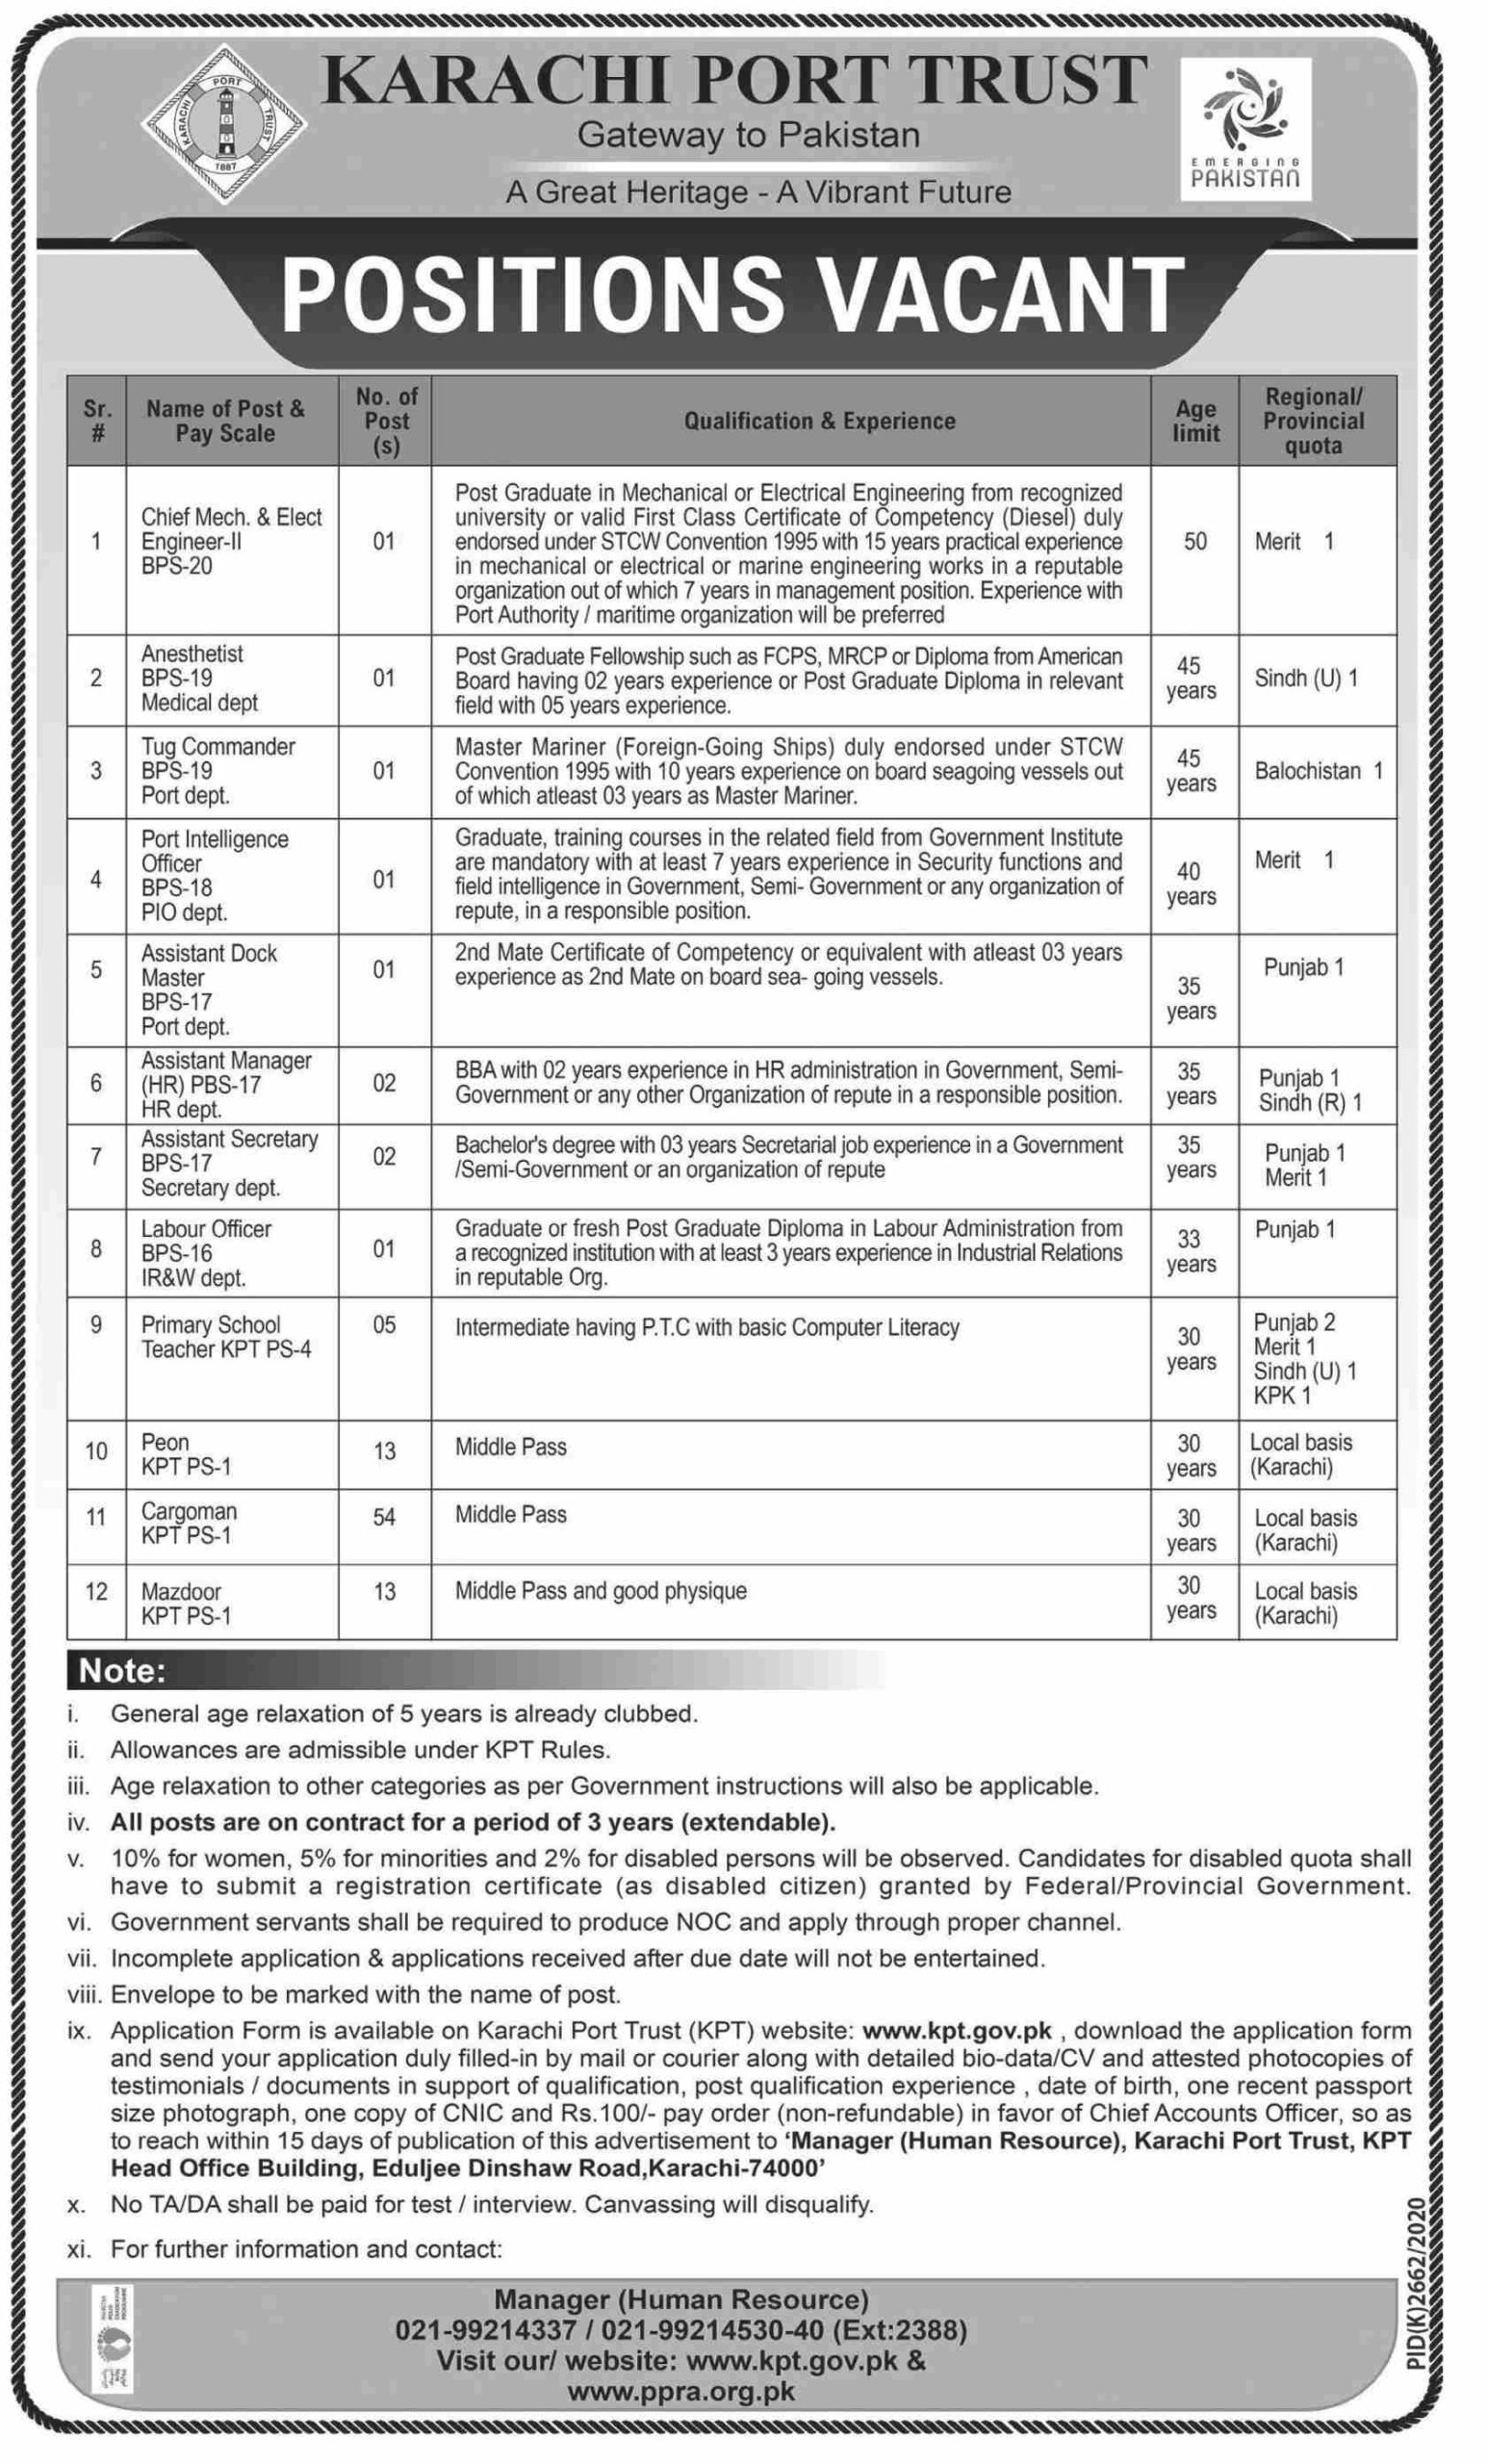 Karachi Port Trust Jobs 2021 in Karachi for Primary School Teacher